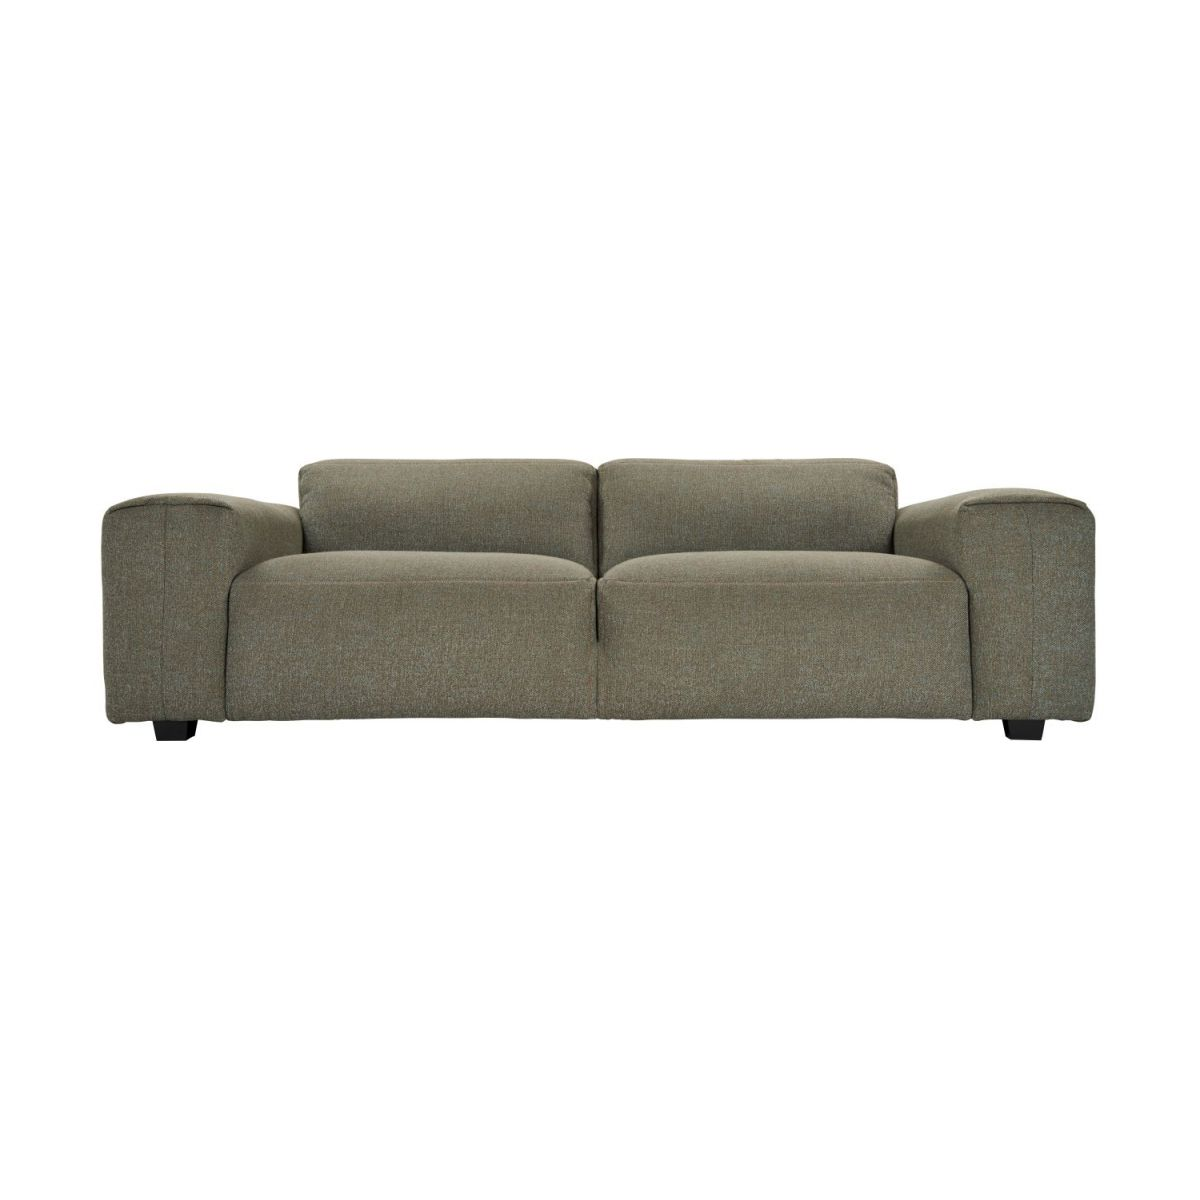 4 seater sofa in Lecce fabric, slade grey n°2